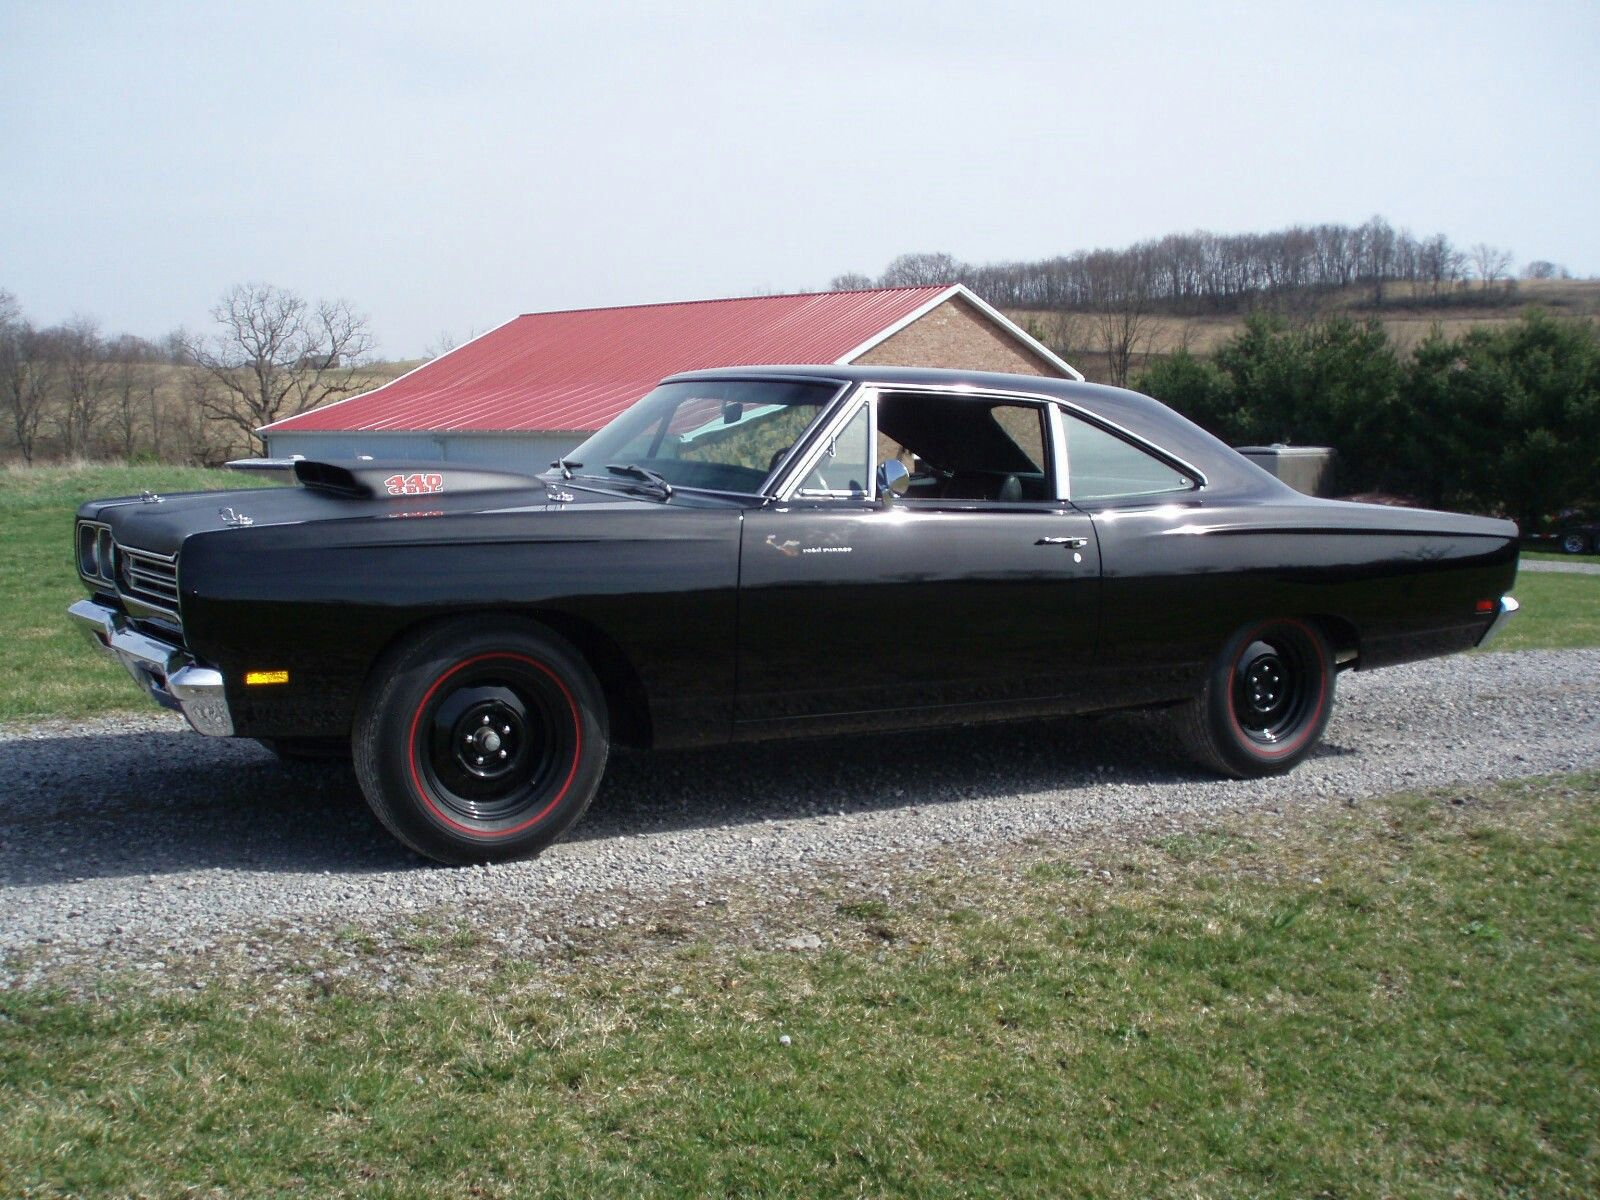 UNRESTOREDORIGINAL 1969 1/2 440+6 BBL A-12 PLYMOUTH ROADRUNNER IN EXISTENCE! THIS CAR HAS A UFS CERTIFIED UNRESTORED FACTORY STOCK CERTIFICATE. 1 OF 388 4-SPEED COUPES BUILT. EXTREMELY RARE SINISTER BLACK ON BLACK! THE CAR RETAINS 100% OF IT'S ORIGINAL SHEETMETAL AND OVER 60% OF IT'S ORIGINAL BLACK PAINT FROM THE FACTORY! THIS CAR IS VERY CLEAN, DRY, TIGHT AND RUNS AND DRIVES EXCELLENT. IT PULLS THROUGH THE GEARS REAL HARD AND IS REALLY FAST LIKE A 440+6 BBL SHOULD BE! VERY SUCCESSFUL AND…